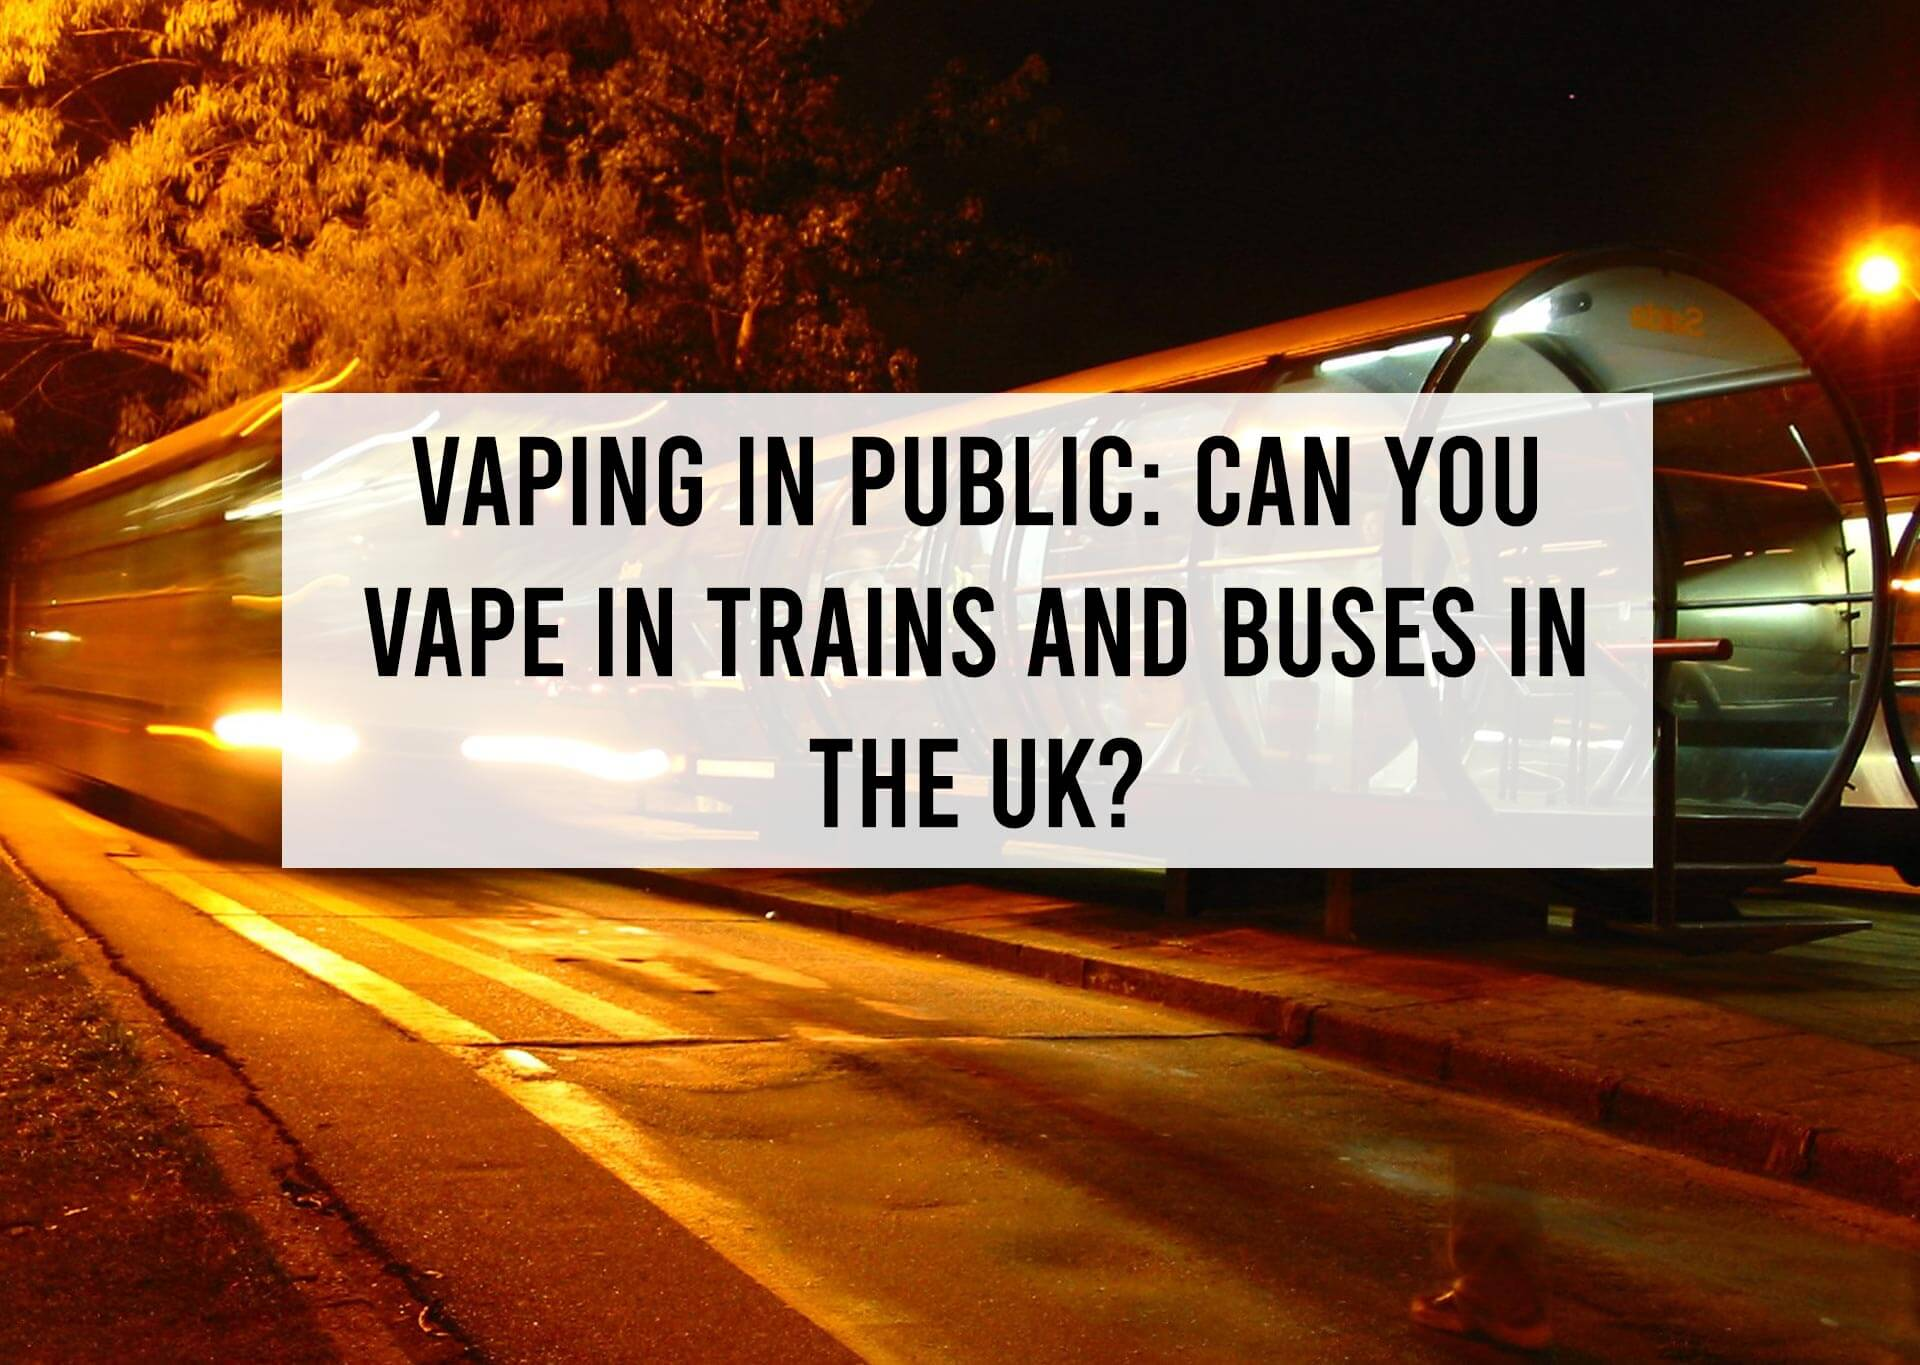 Vaping-in-Public--Can-you-Vape-in-Trains-and-Buses-in-the-UK